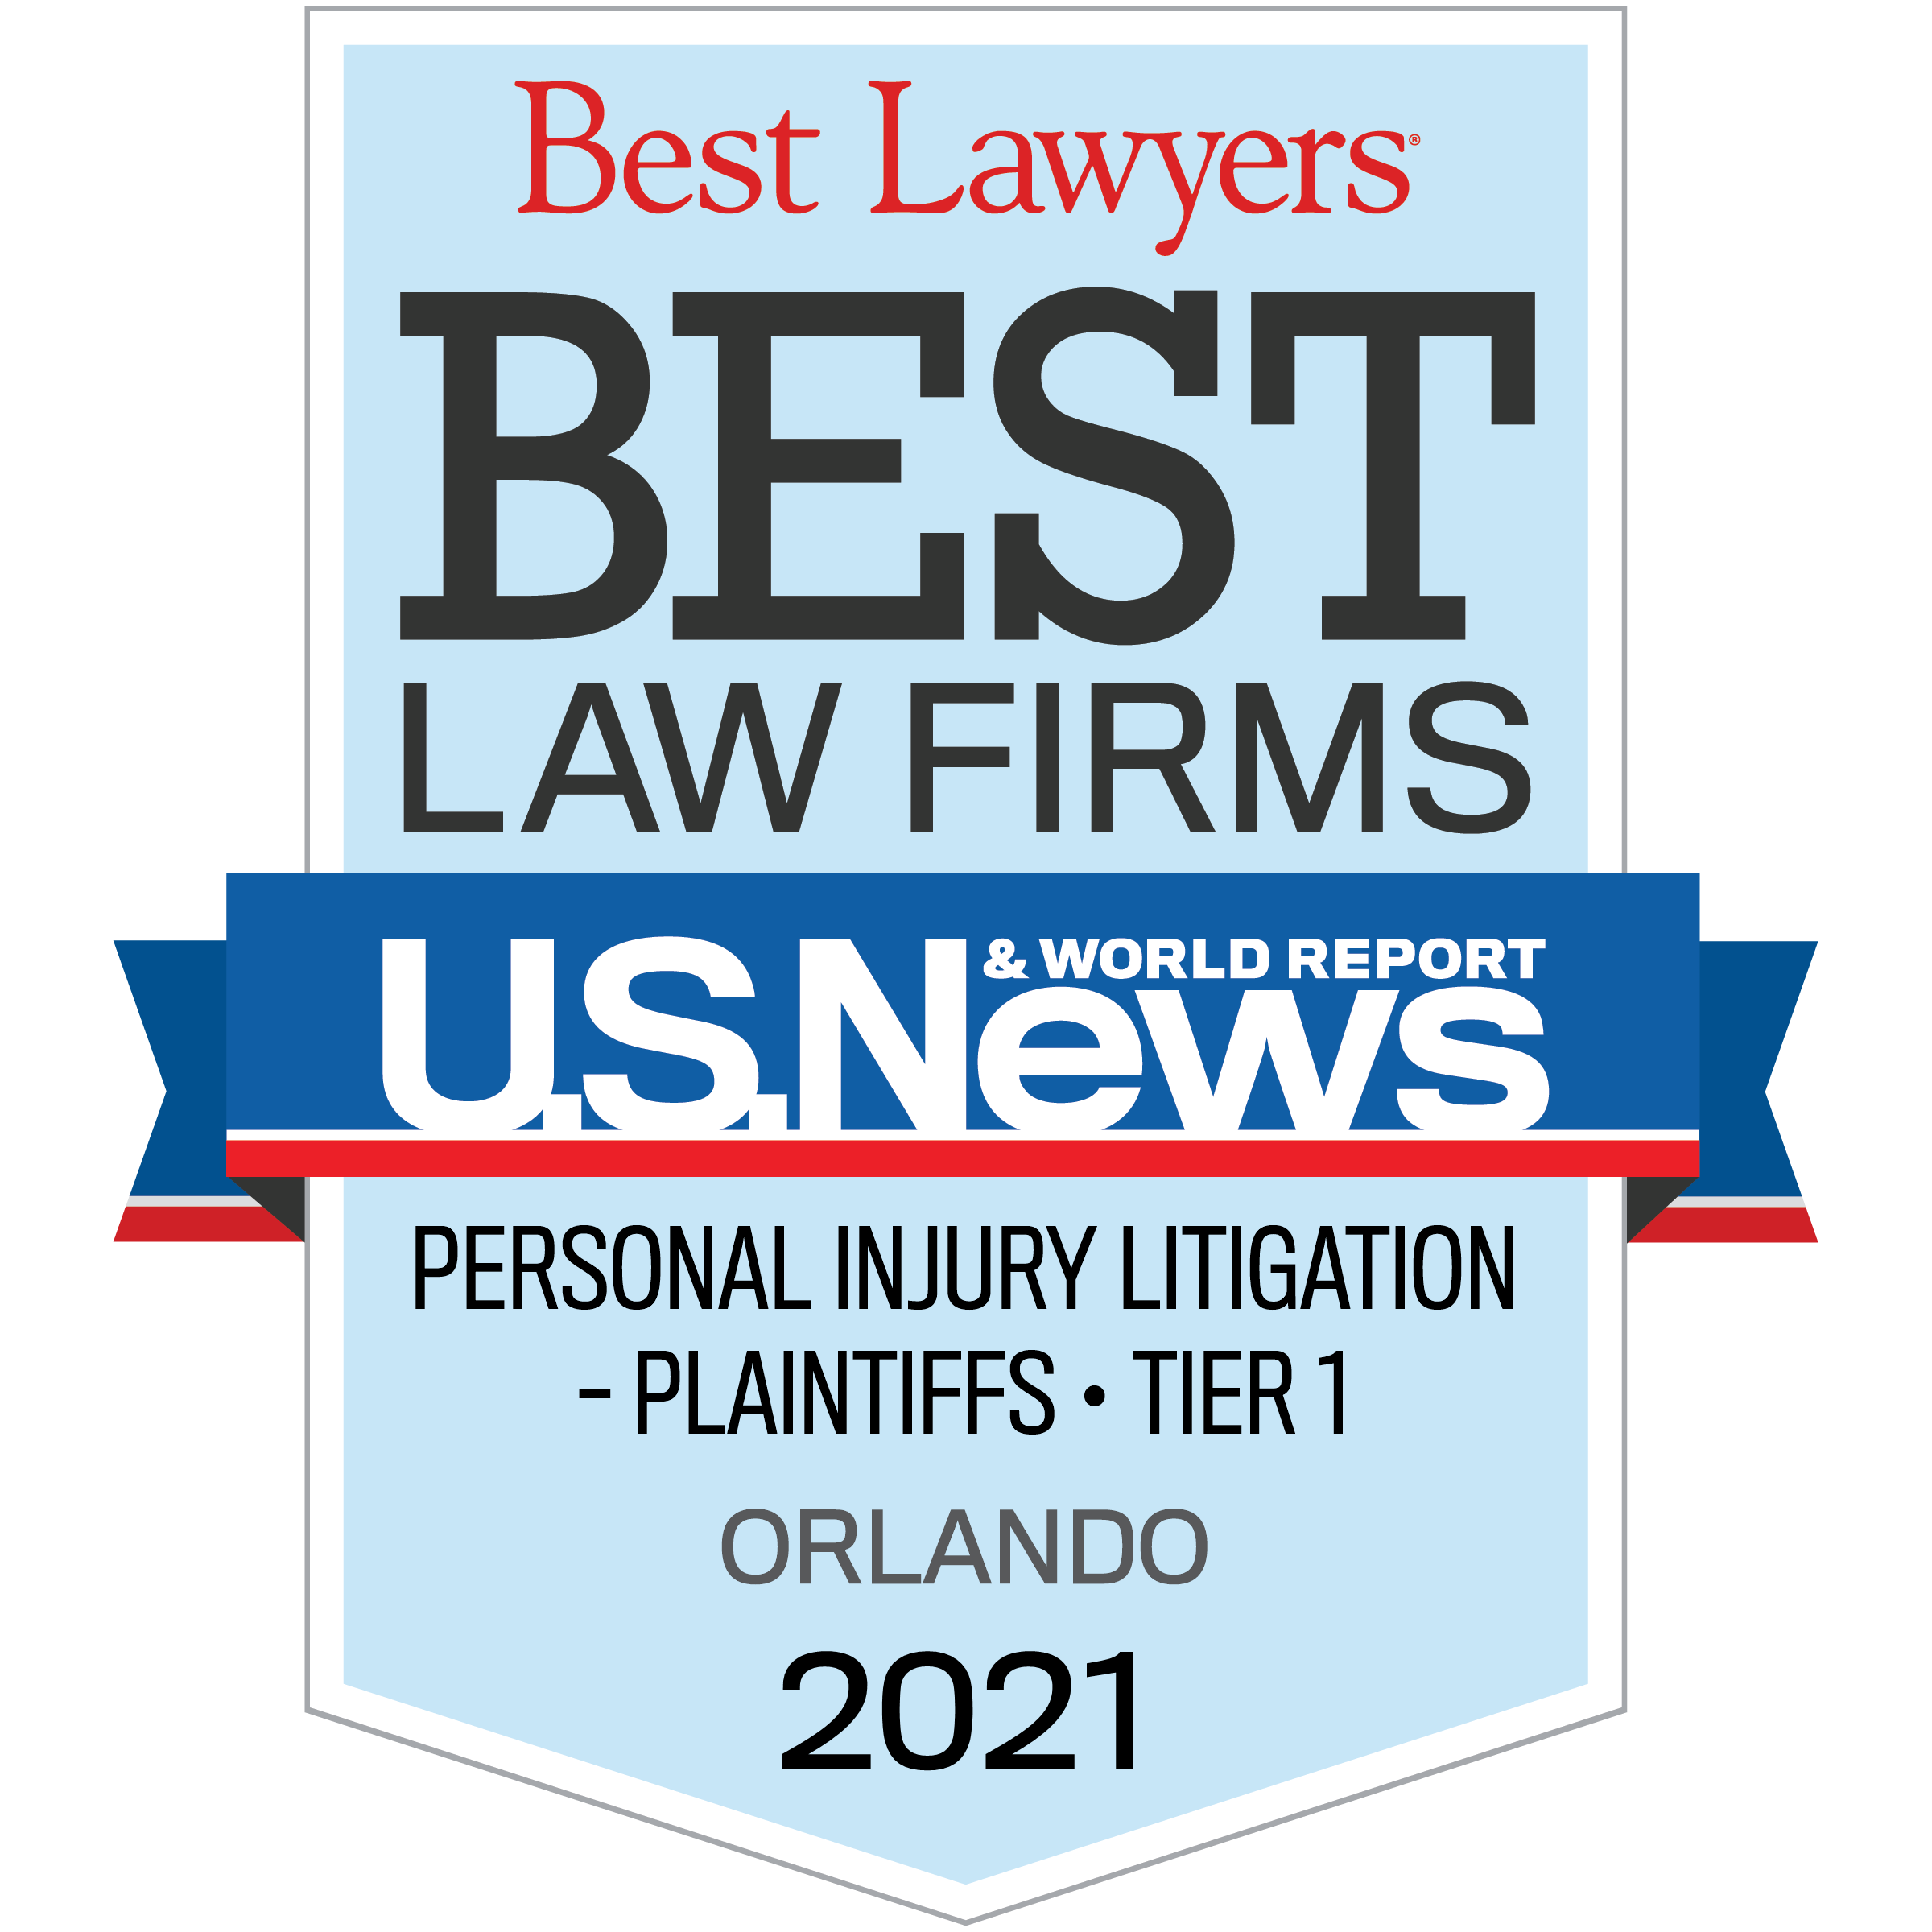 Best Lawyers Tier 1 - Personal Injury Litigation